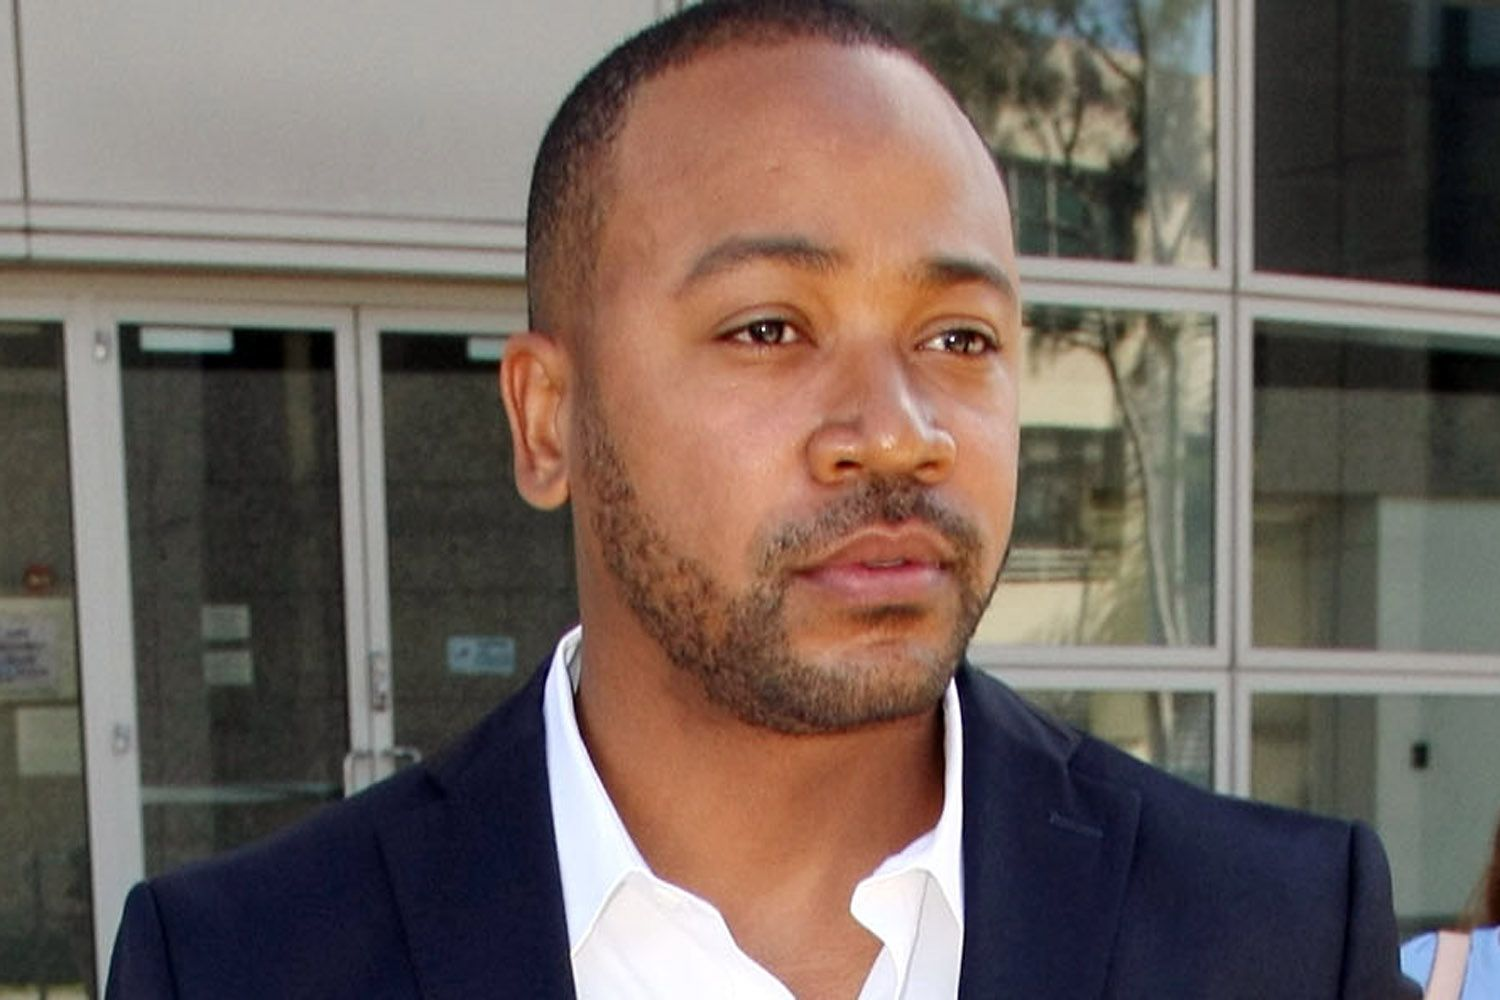 LOS ANGELES, CA - MAY 15: Columbus Keith Short appears at Los Angeles Superior Court on May 15, 2014 in Los Angeles, California. (Photo by David Buchan/Getty Images)